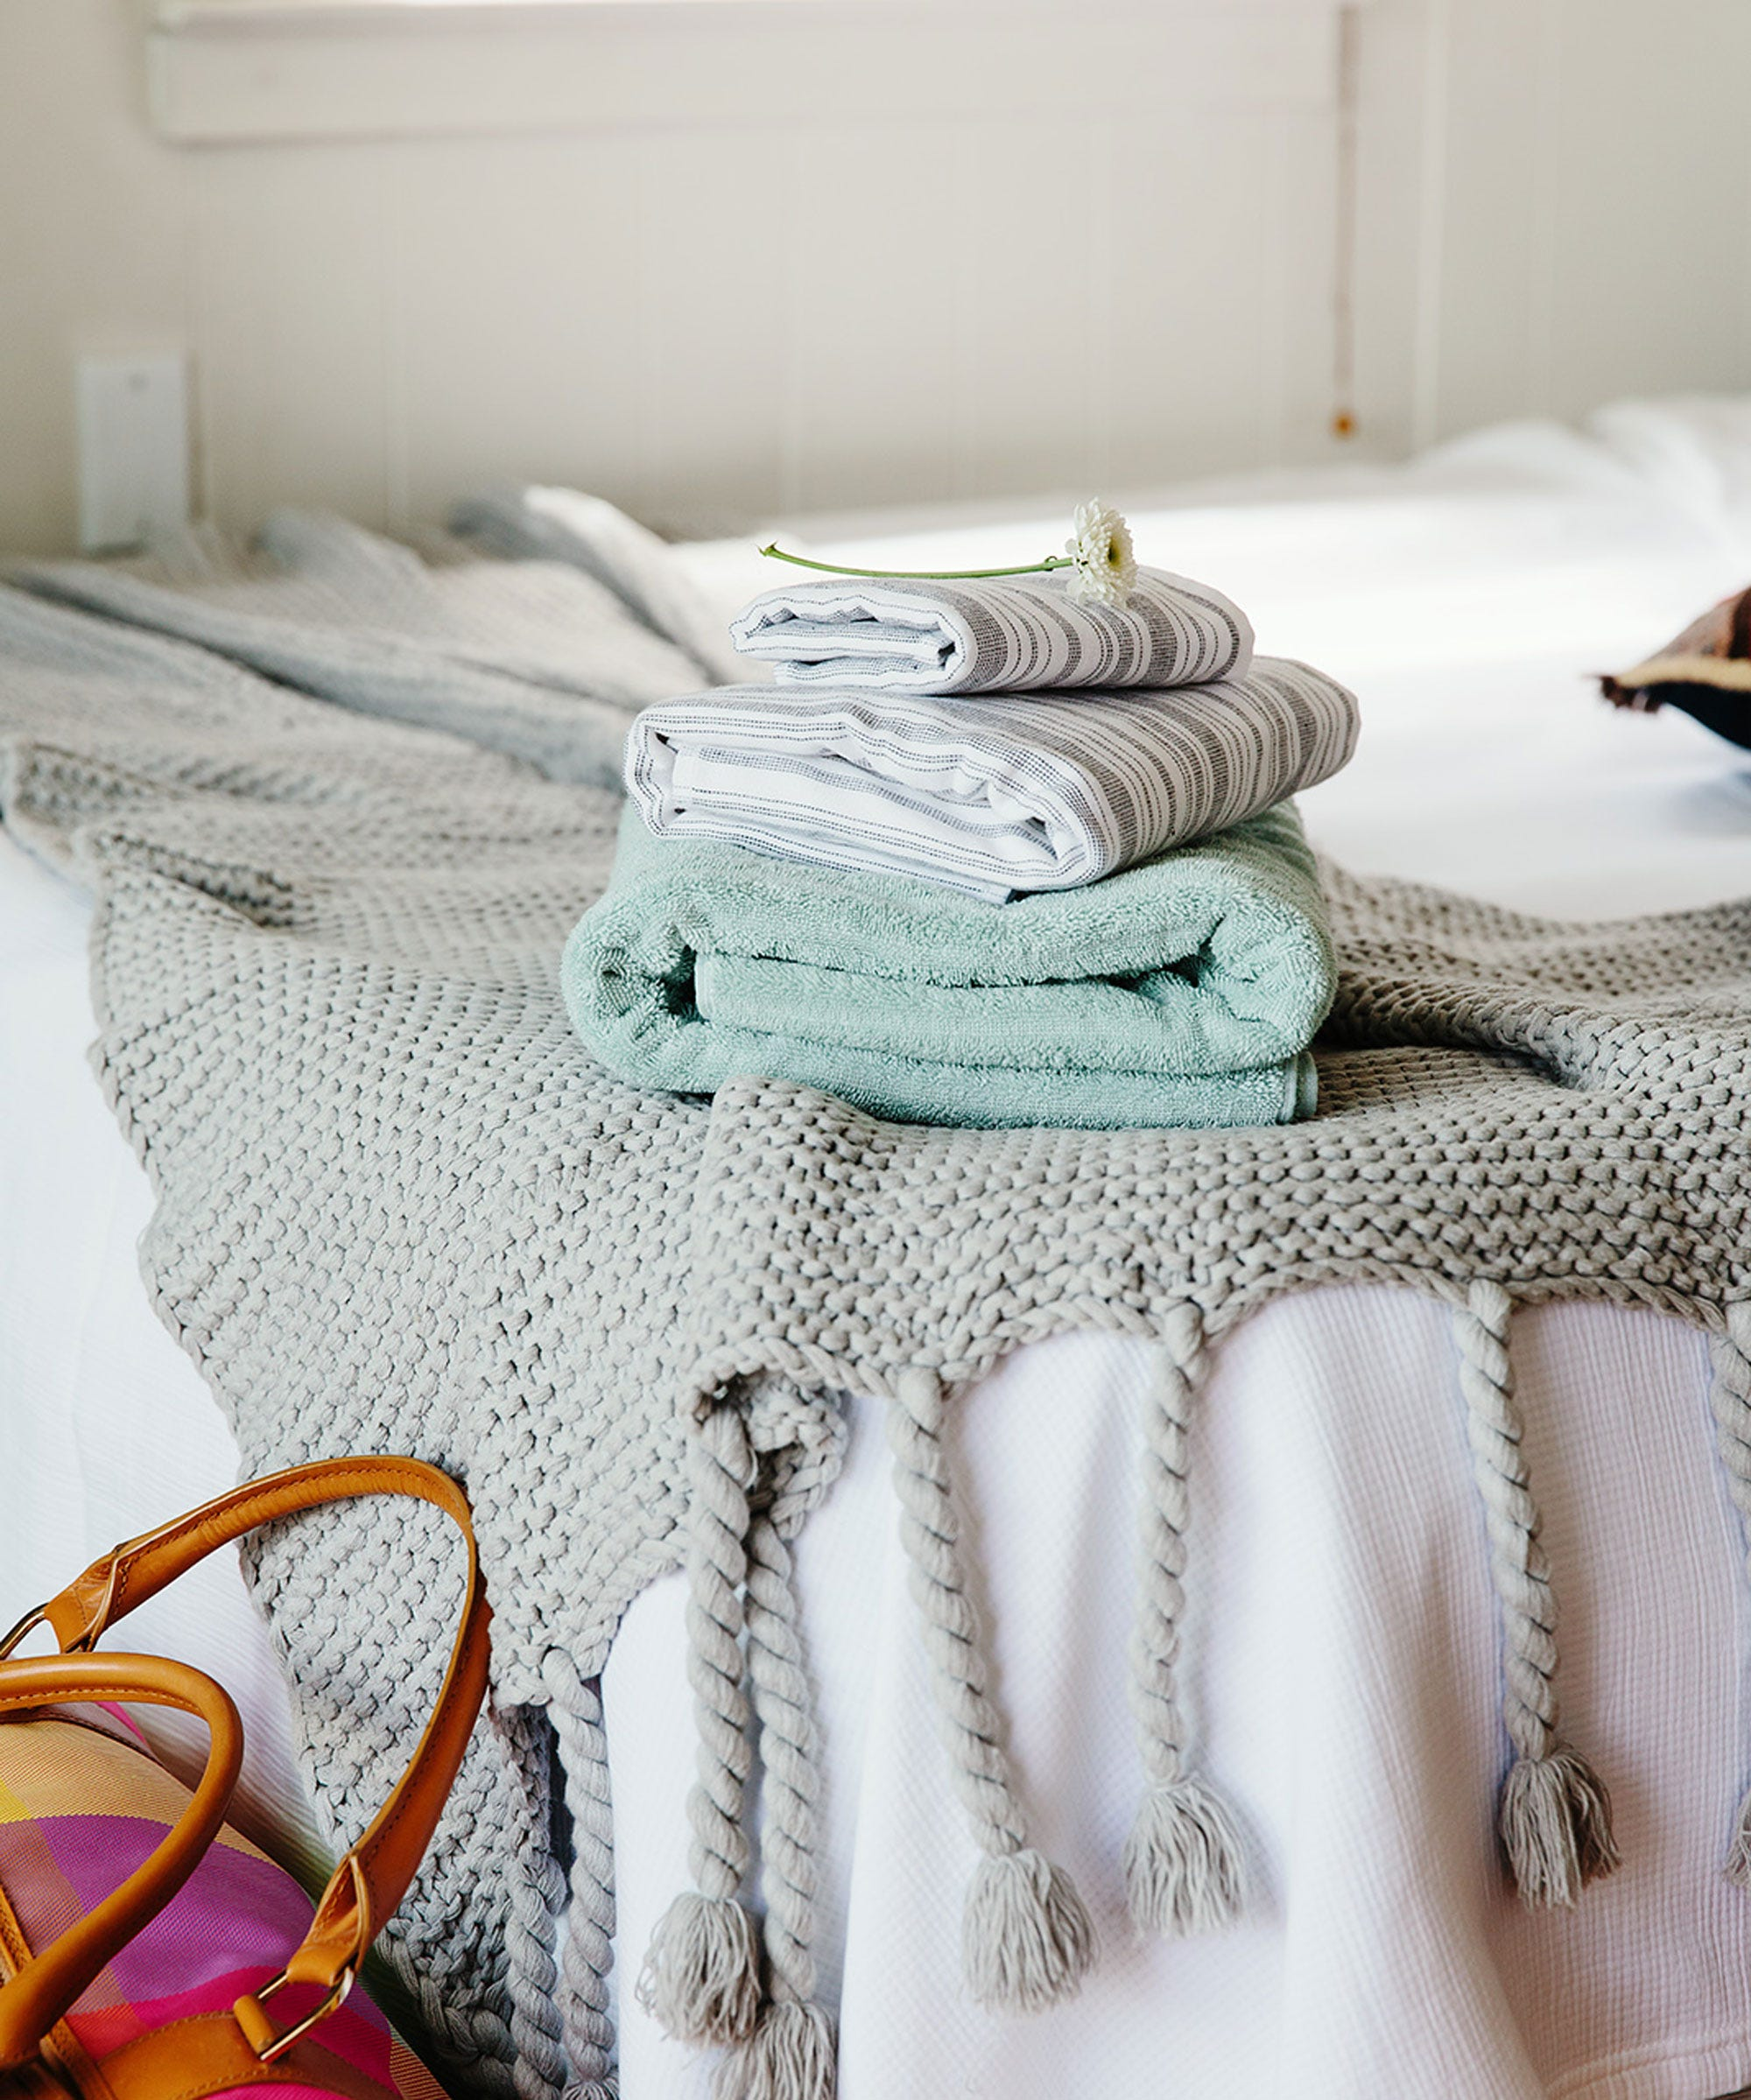 How Often Should I Wash My Sheets Laundry Guide